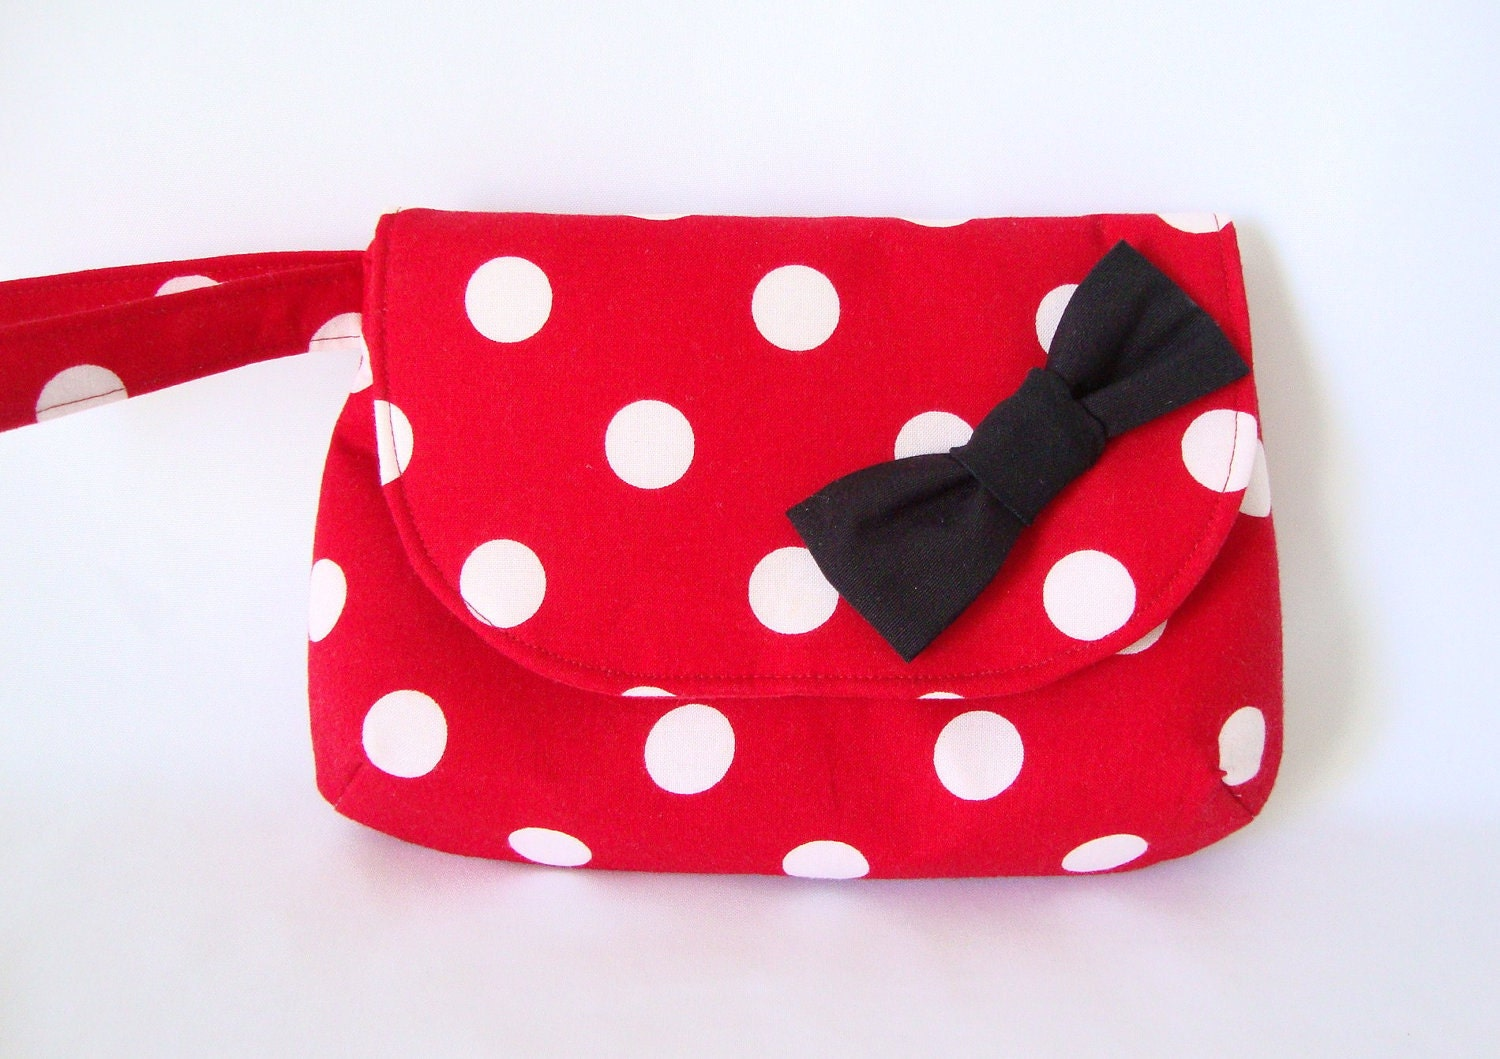 Wristlet Clutch in Red White Polka Dots with Black Bow - PoshPursesBoutique